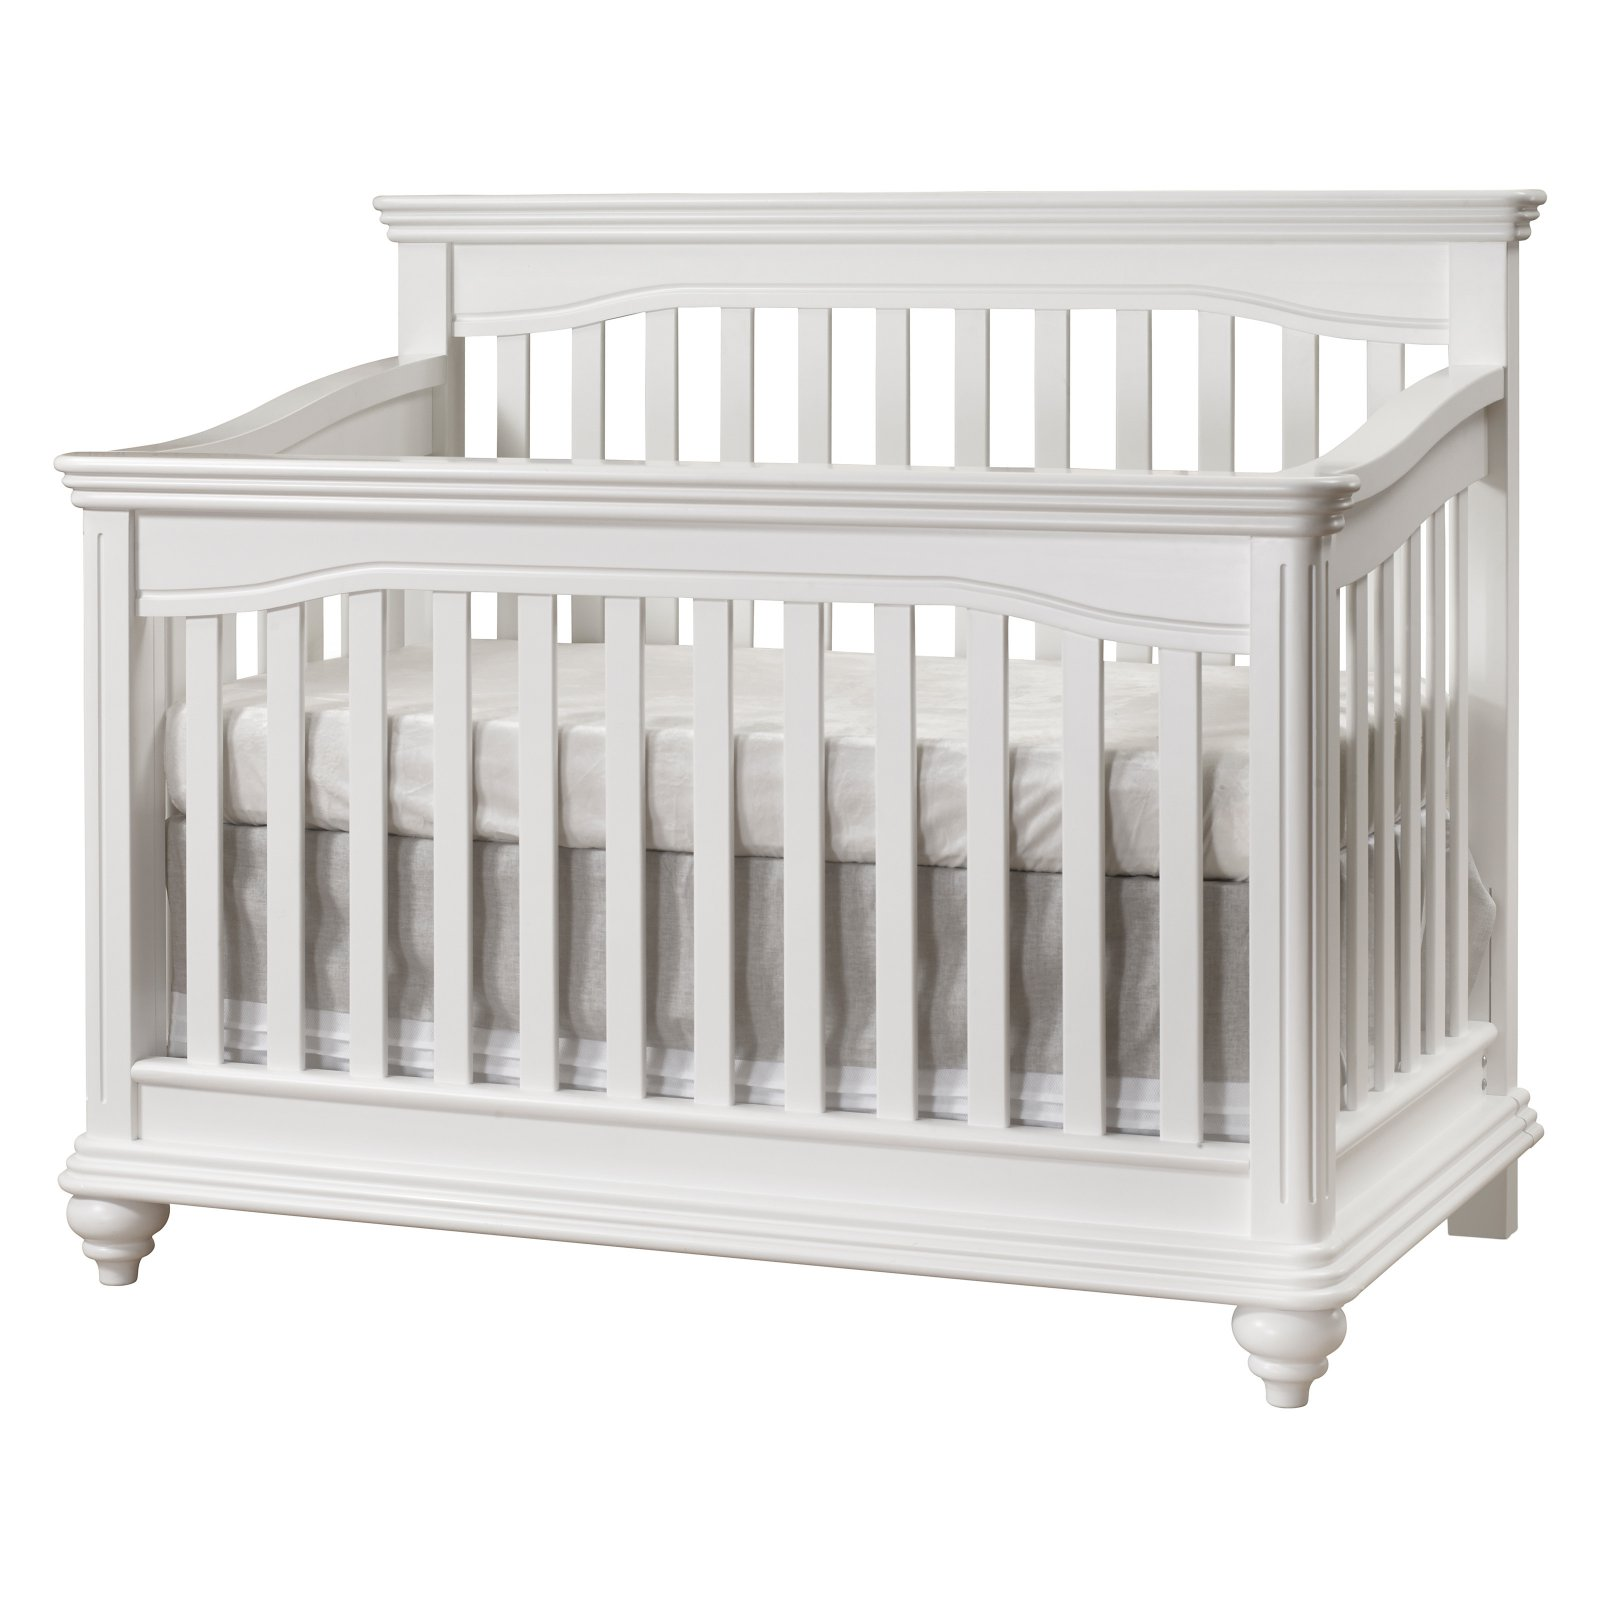 Lusso Nursery Vicenza Crib with Toddler Rail